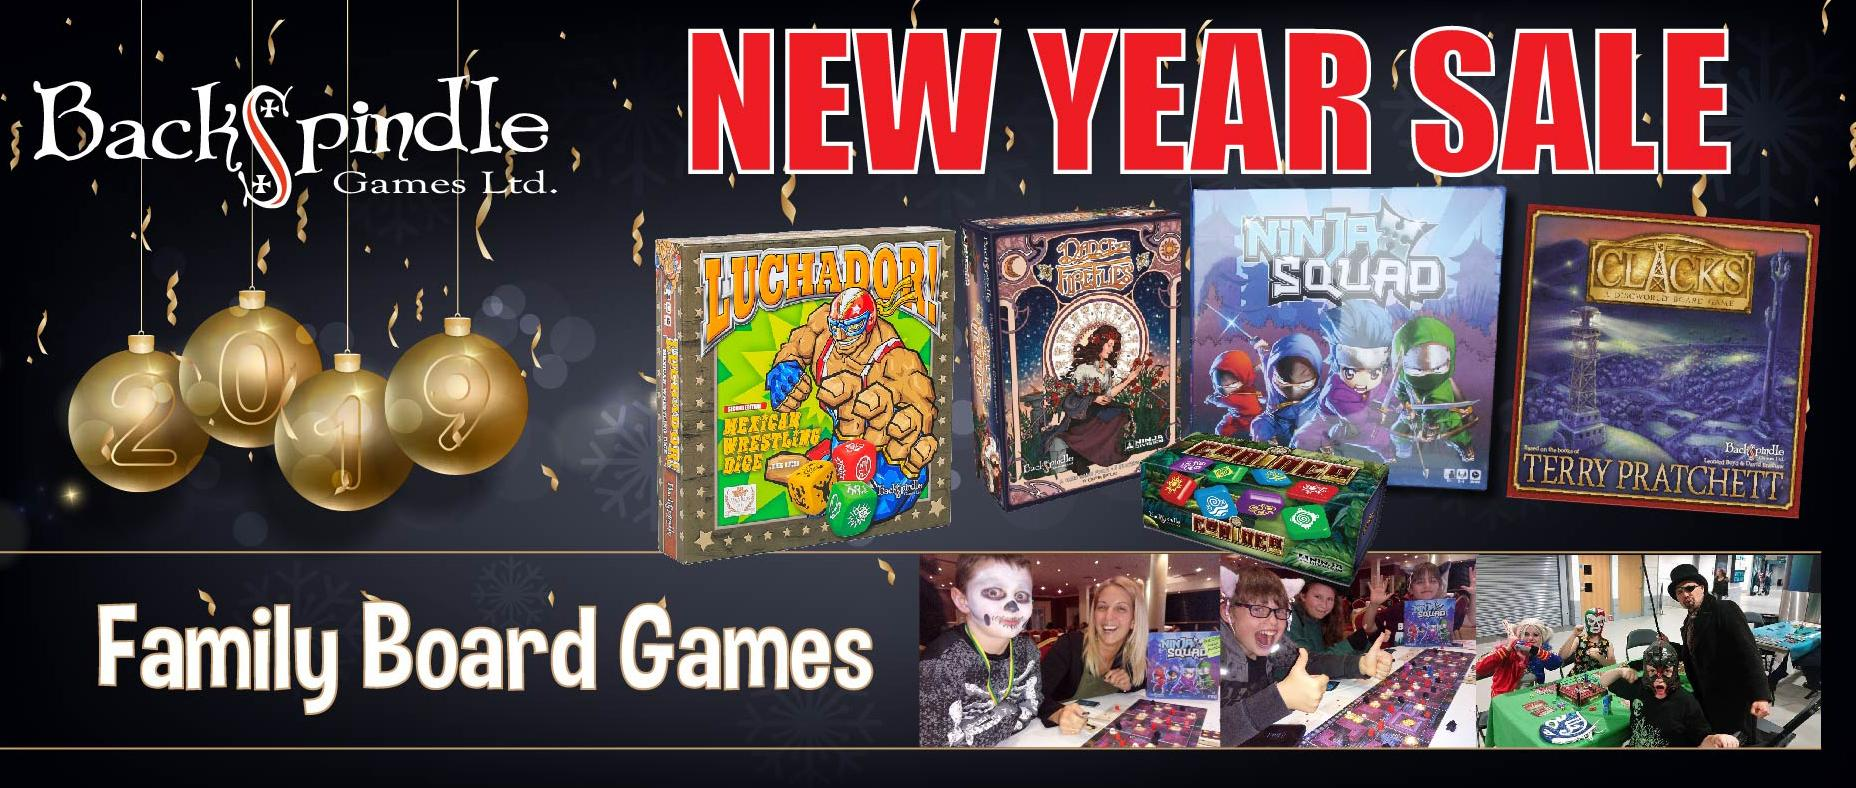 New Year Family Boardgame Sale Now on ALL Games ( 30 Dec - 3 Jan )